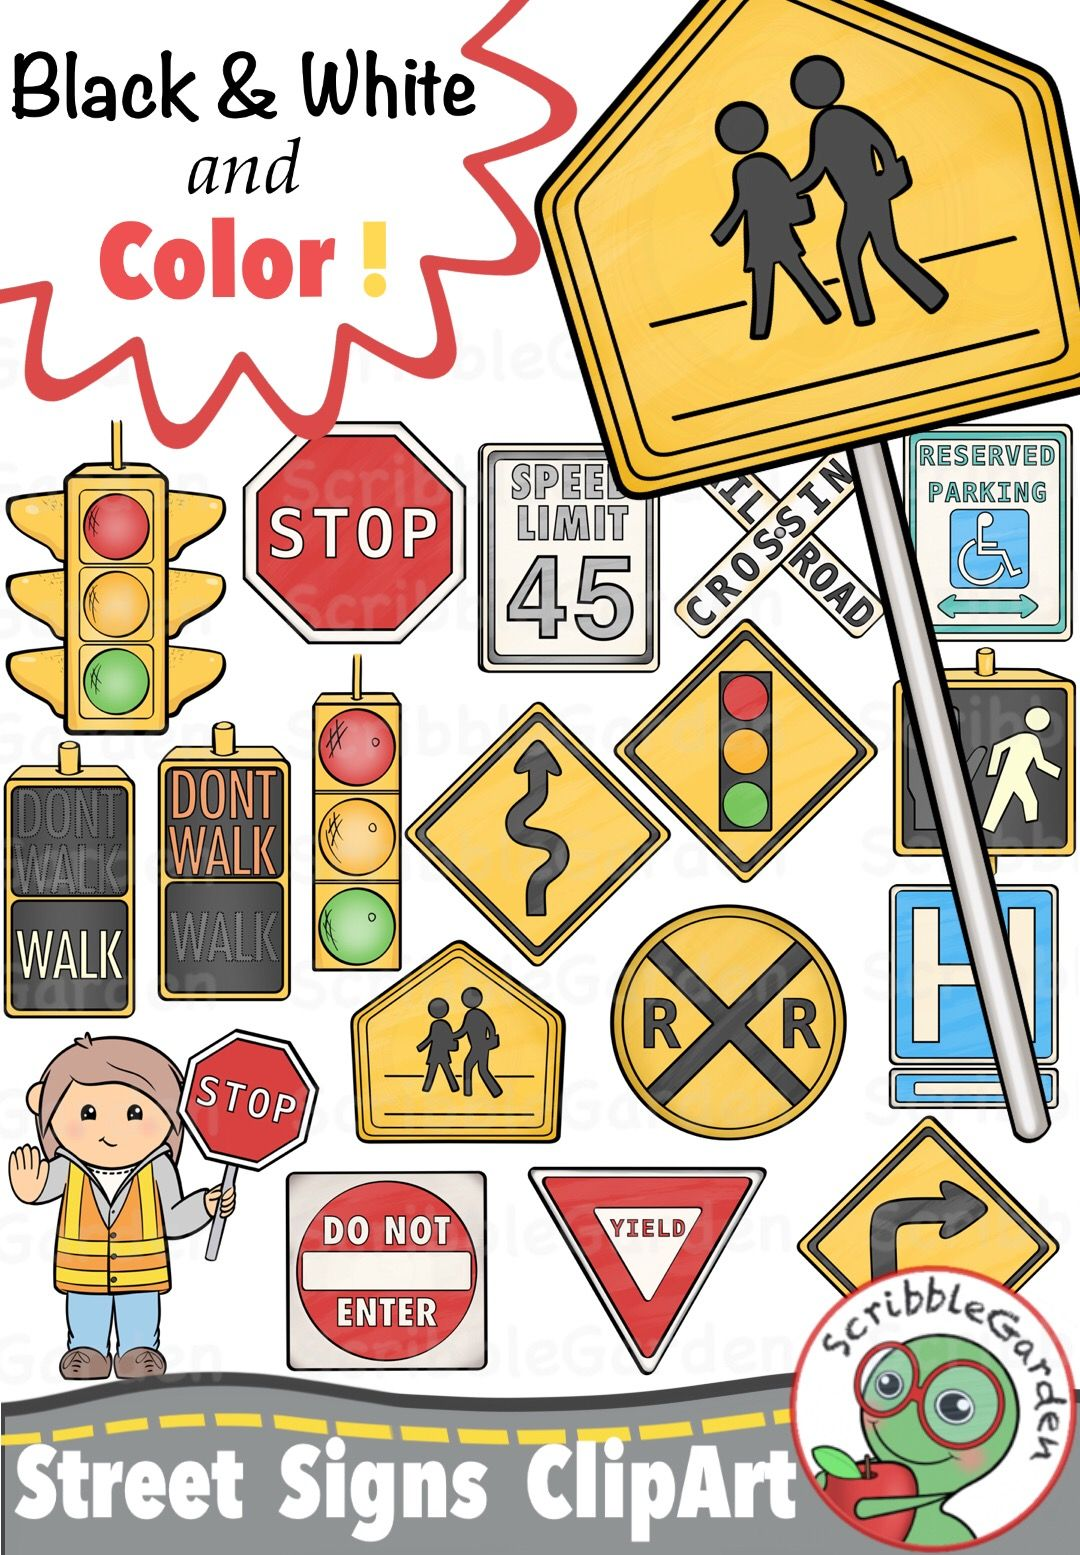 Bike at crosswalk safety clipart graphic royalty free library Road Safety: Street Signs ClipArt | My ClipArt | Street signs, Safe ... graphic royalty free library